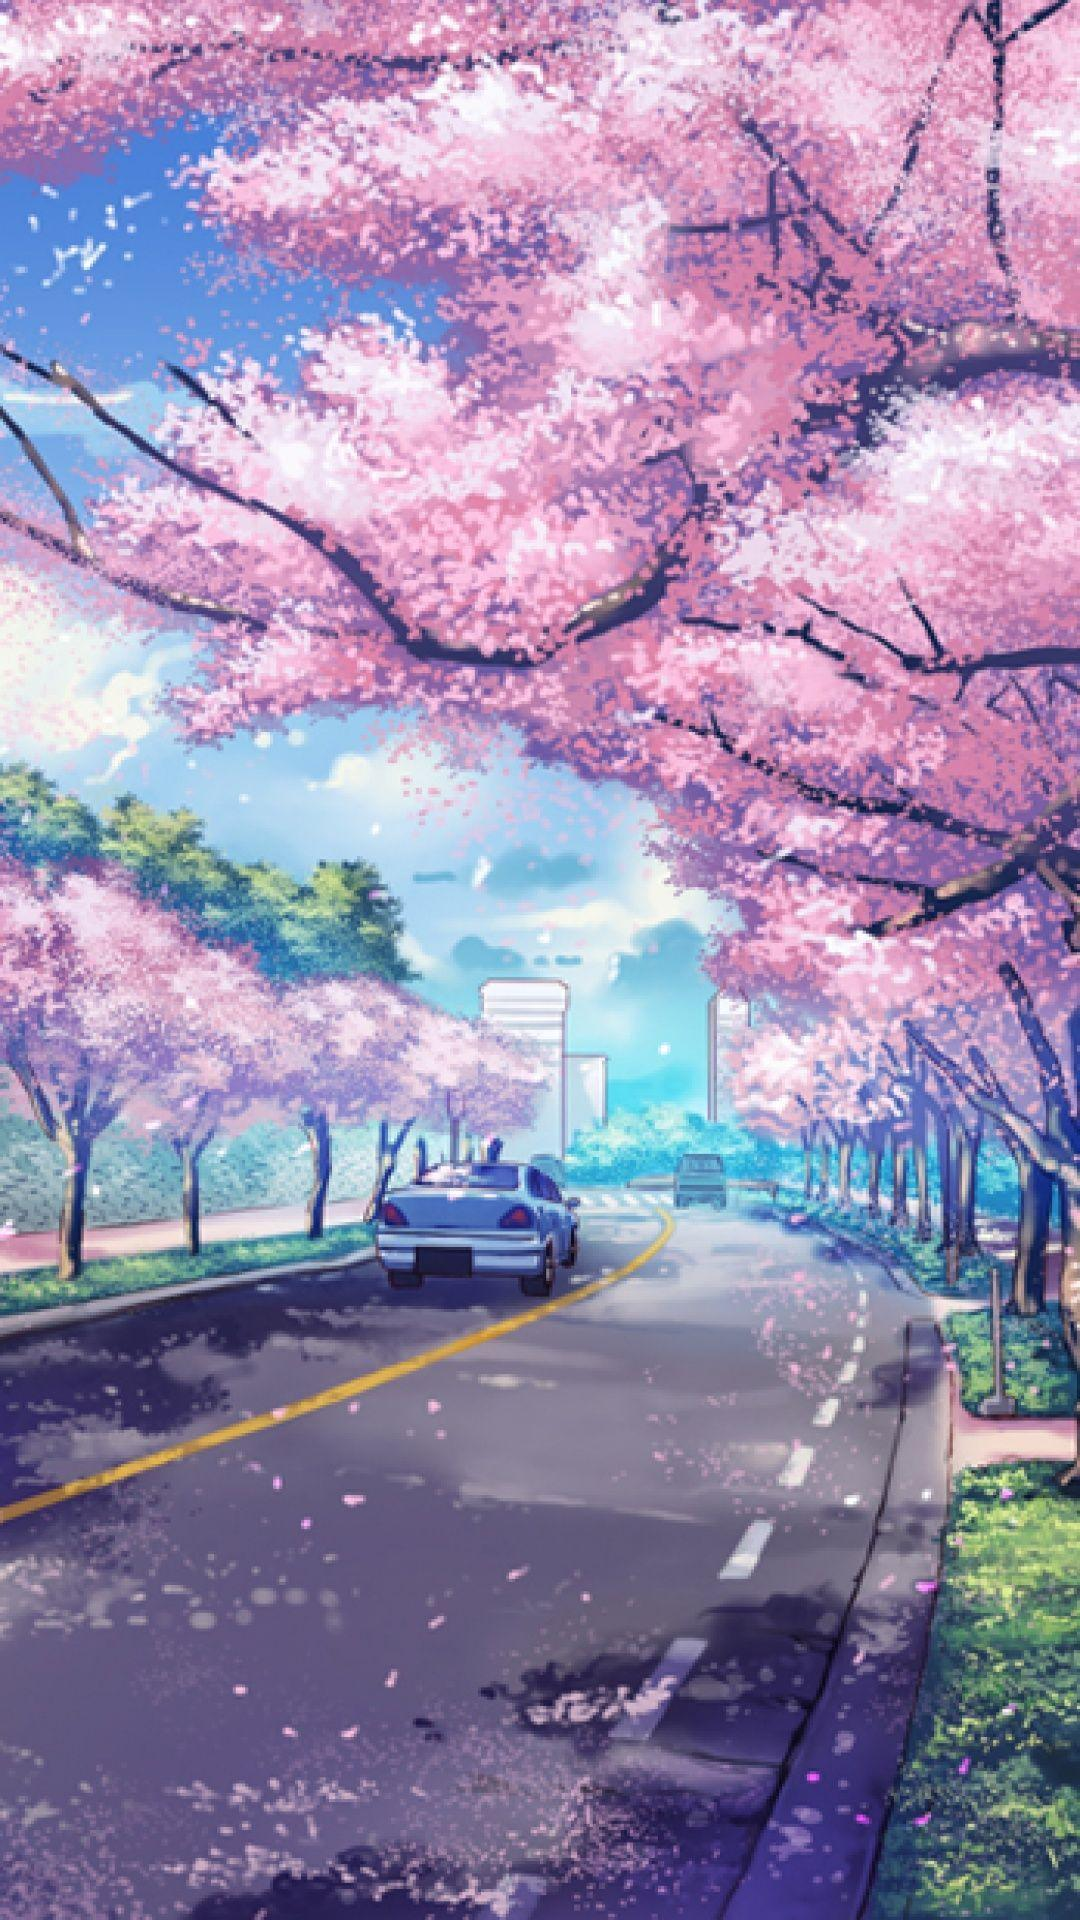 Aesthetic Anime Bedroom Wallpapers Posted By Michelle Tremblay